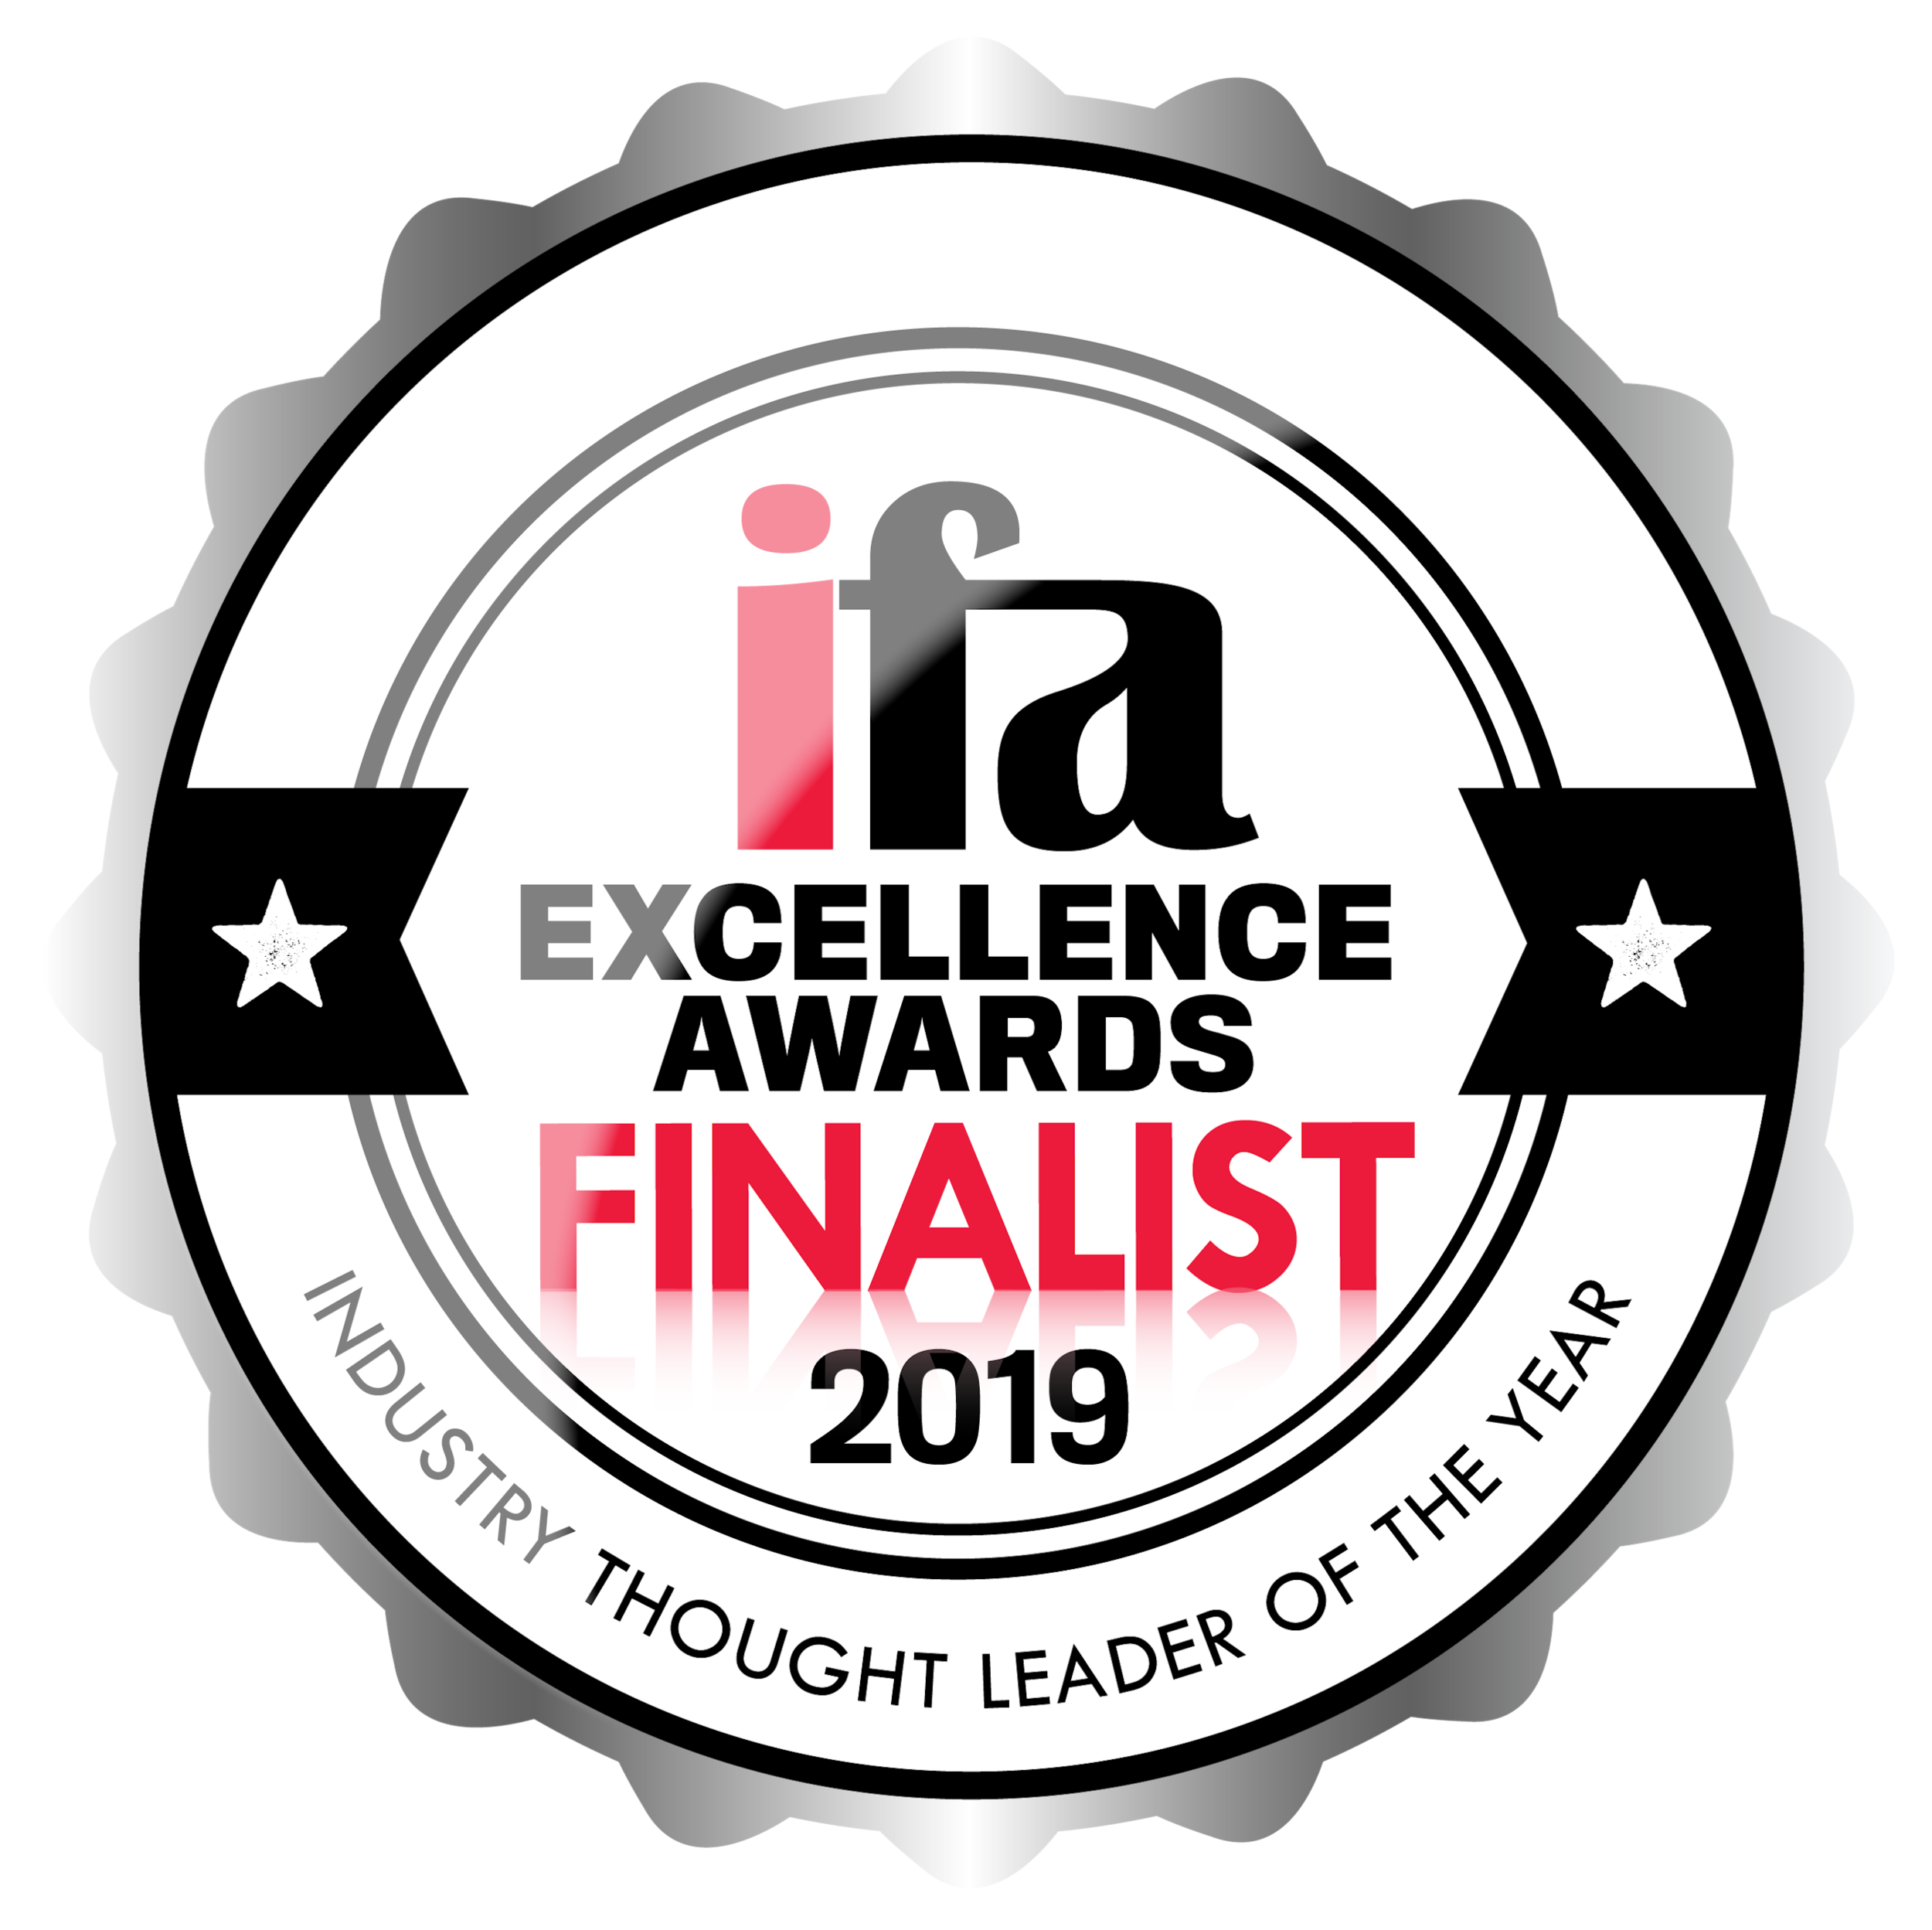 New edit IFA_SEAL_2019_FINALIST_Industry Thought Leader of the Year copy.png